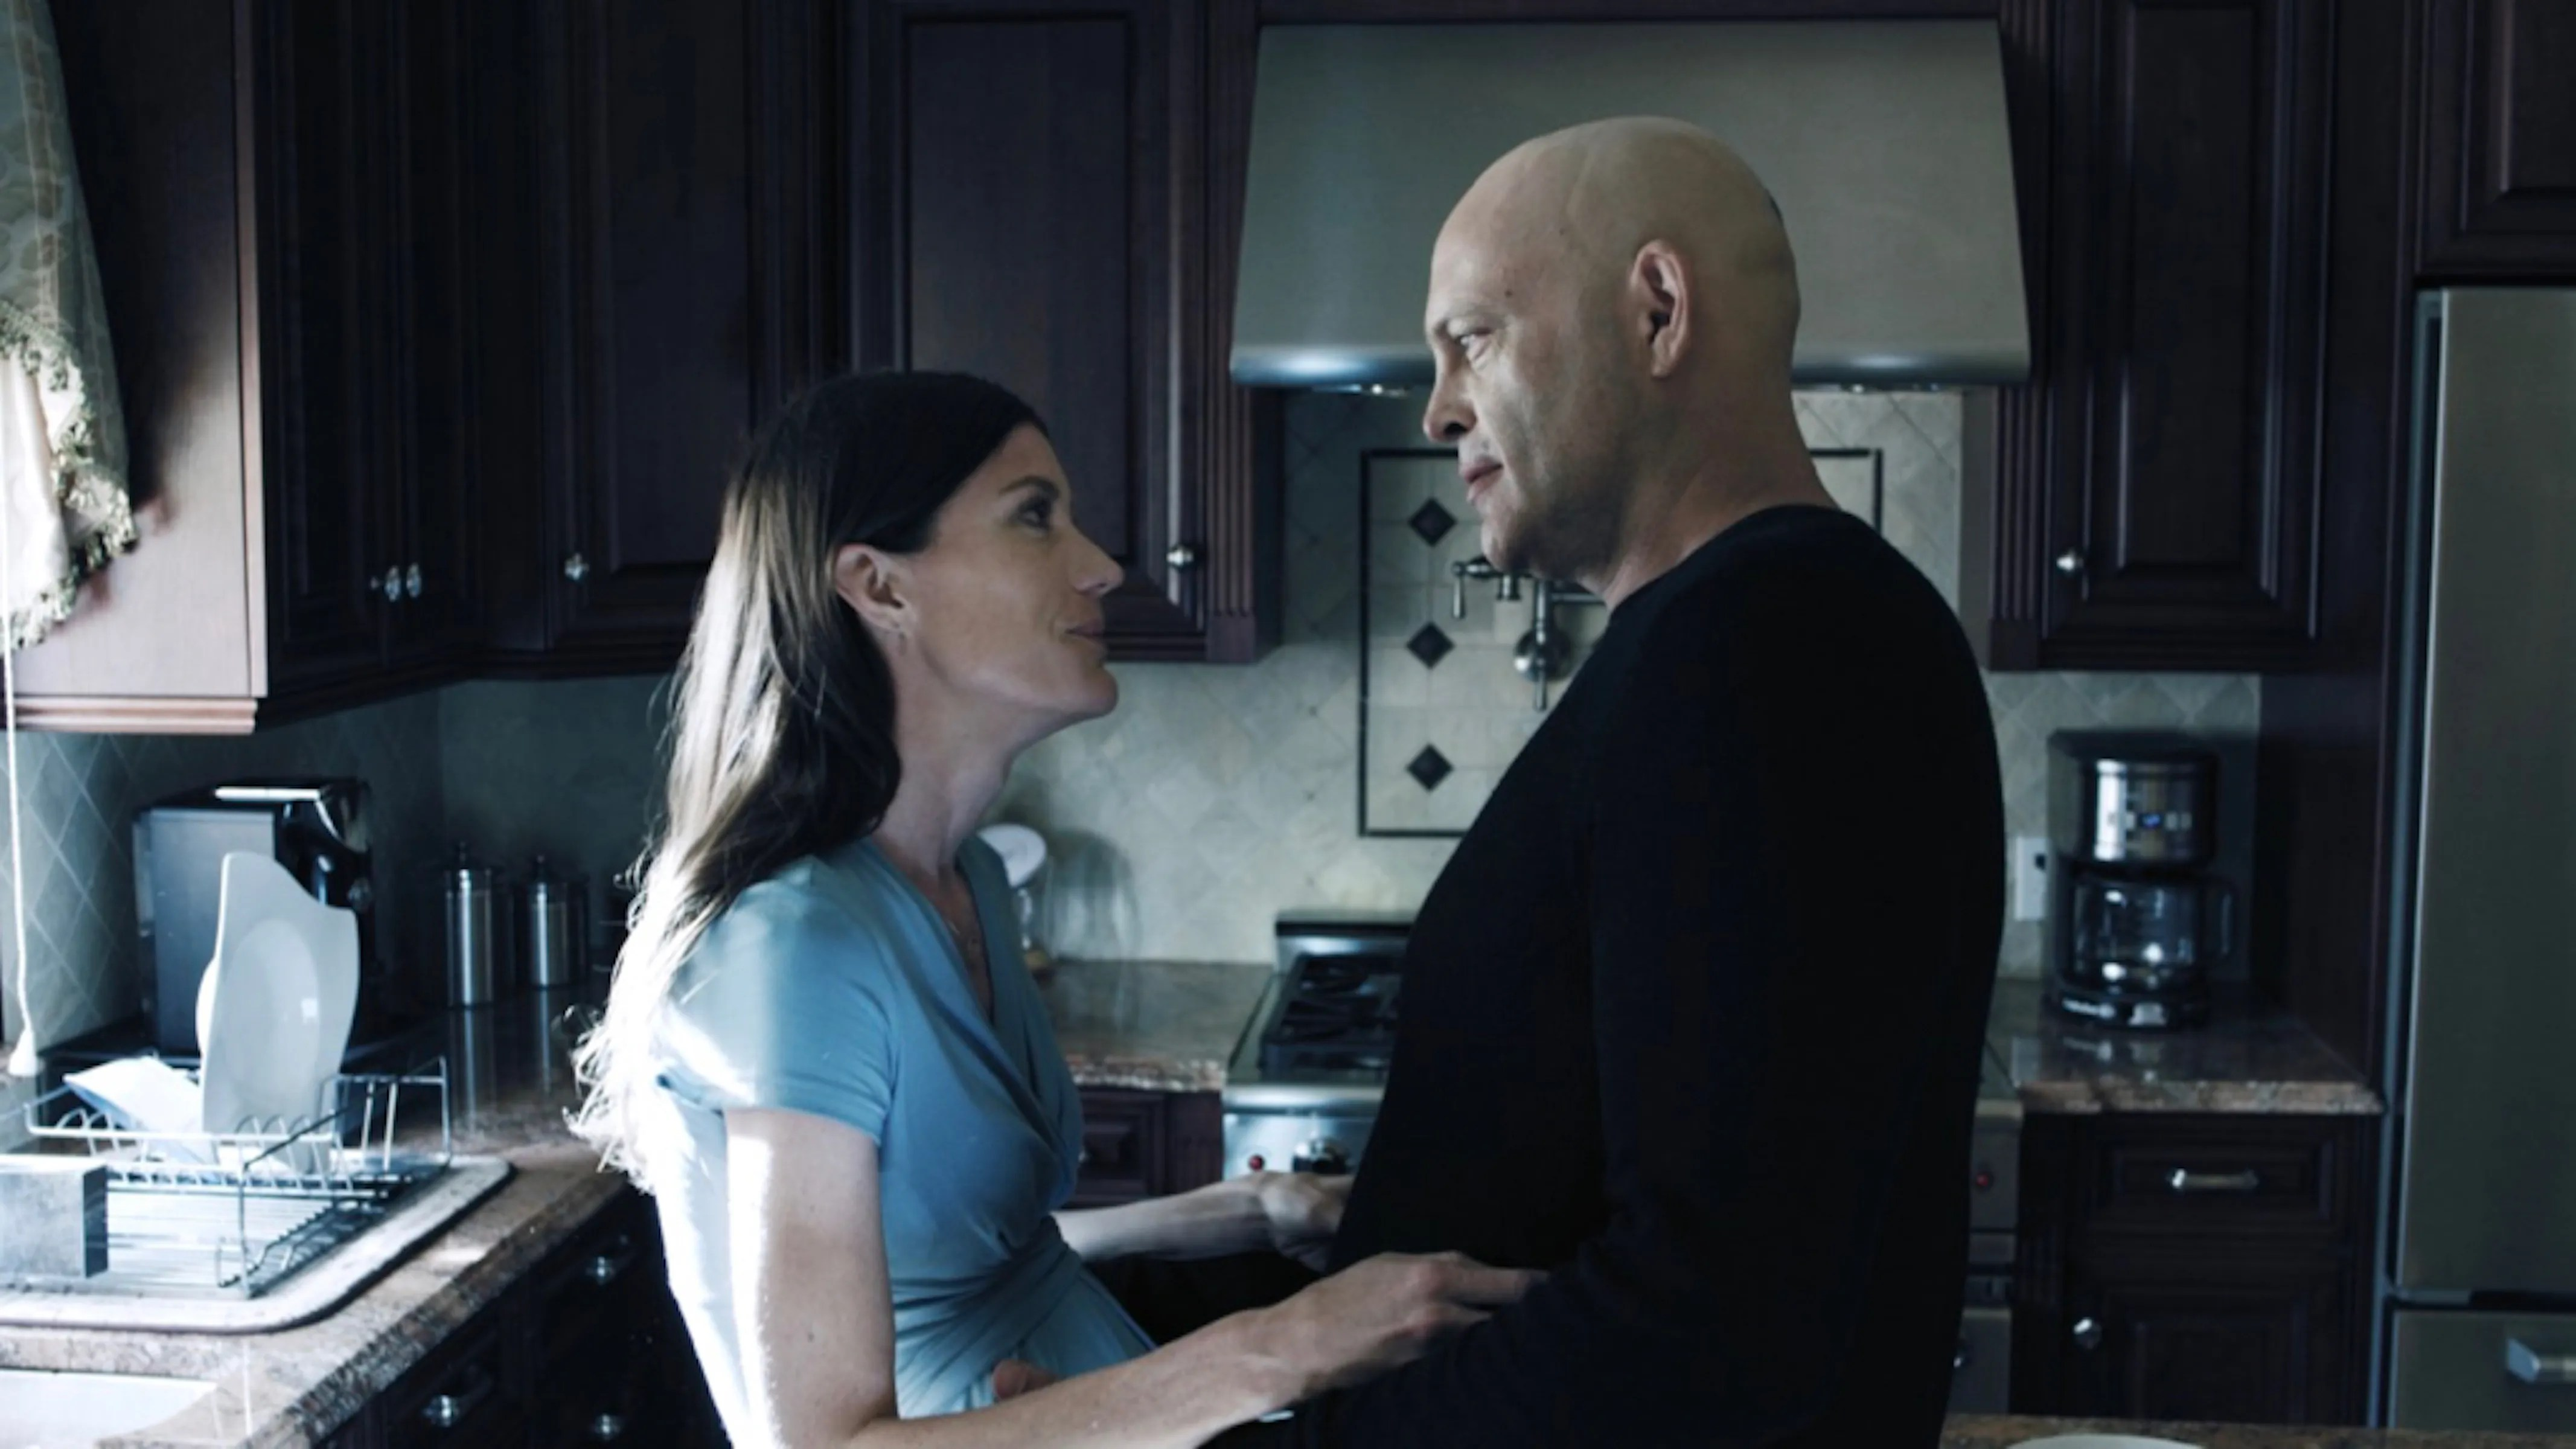 Vince Vaughn and Jennifer Carpenter in Brawl in Cell Block 99 which is a movie called Brawl in Cell Block 99 with Vince Vaughn and Jennifer Carpenter in a movie called Brawl in Cell Block 99 which still needed some Craigula.